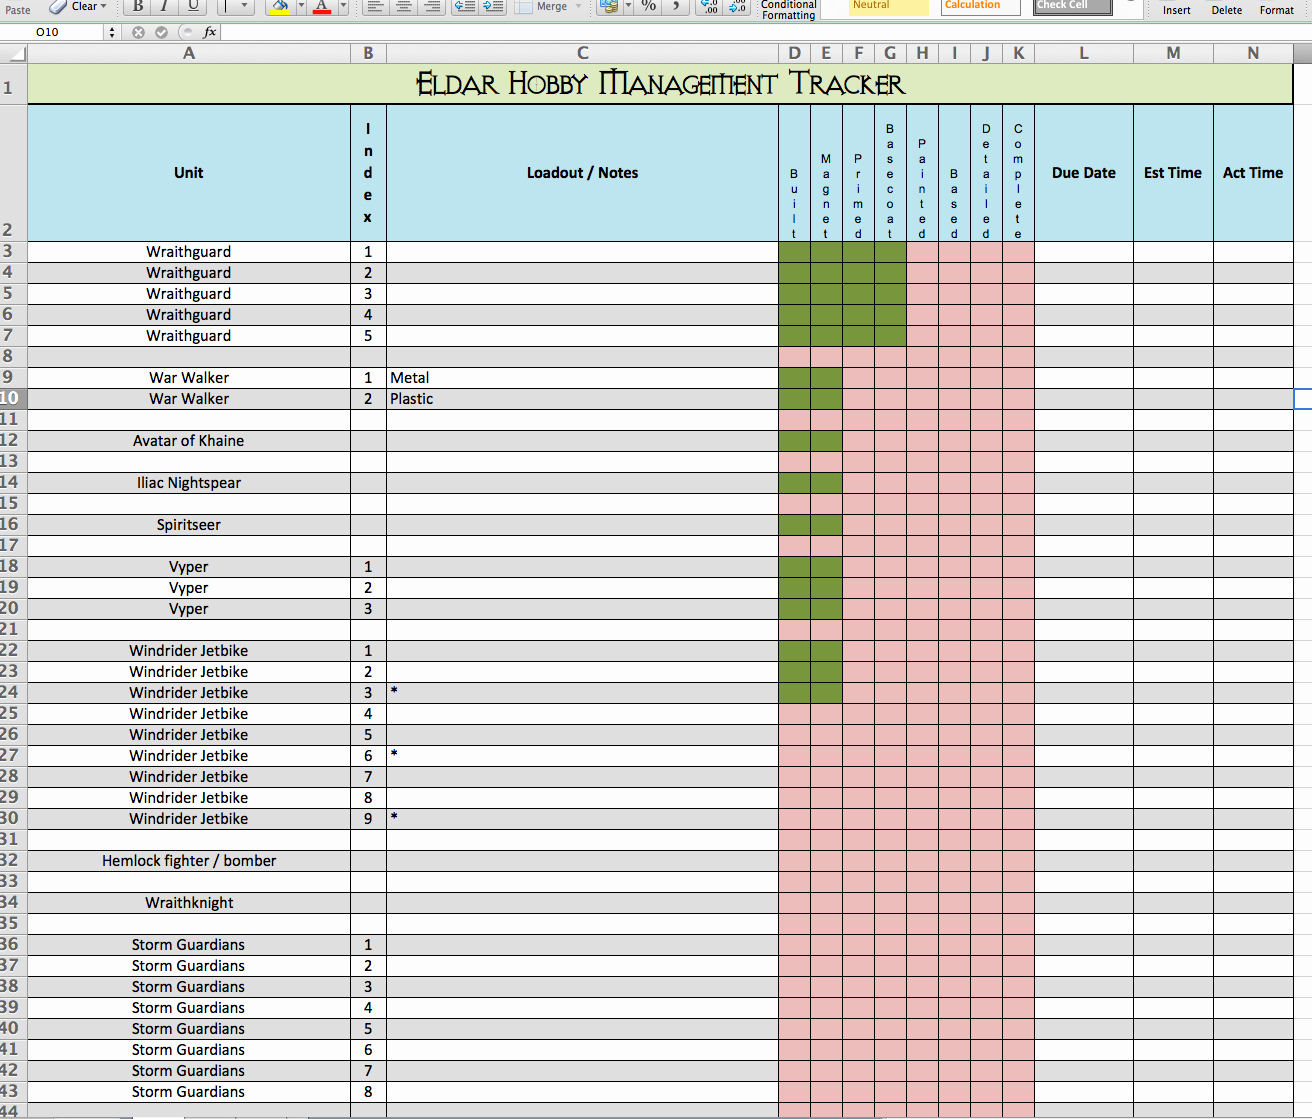 Sales Tracking Spreadsheet Template Fresh Sales Tracking Spreadsheet Template Tracking Spreadsheet